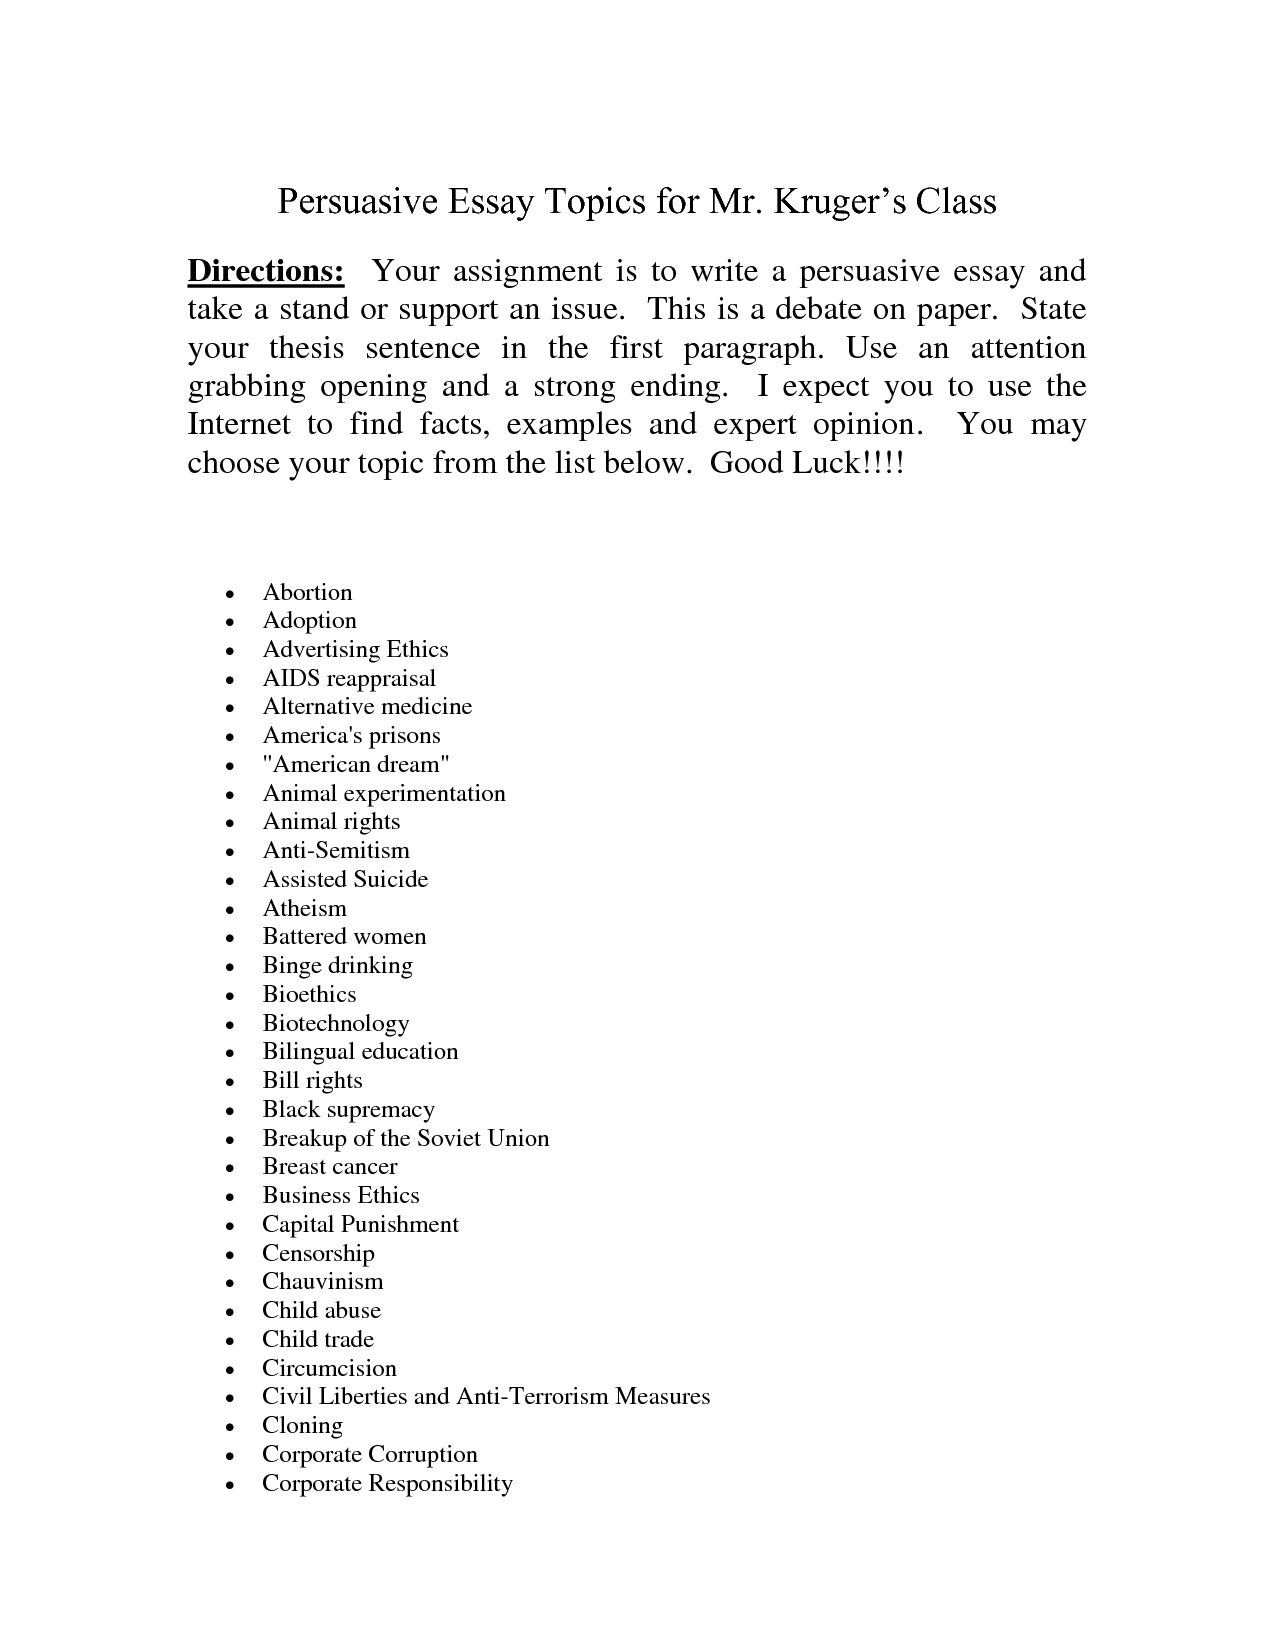 5 paragraph persuasive essay on child abuse How do i write a conclusion paragraph on a child abuse tips when writing a persuasive essay against child abuse i write a 5 paragraph opinion essay.